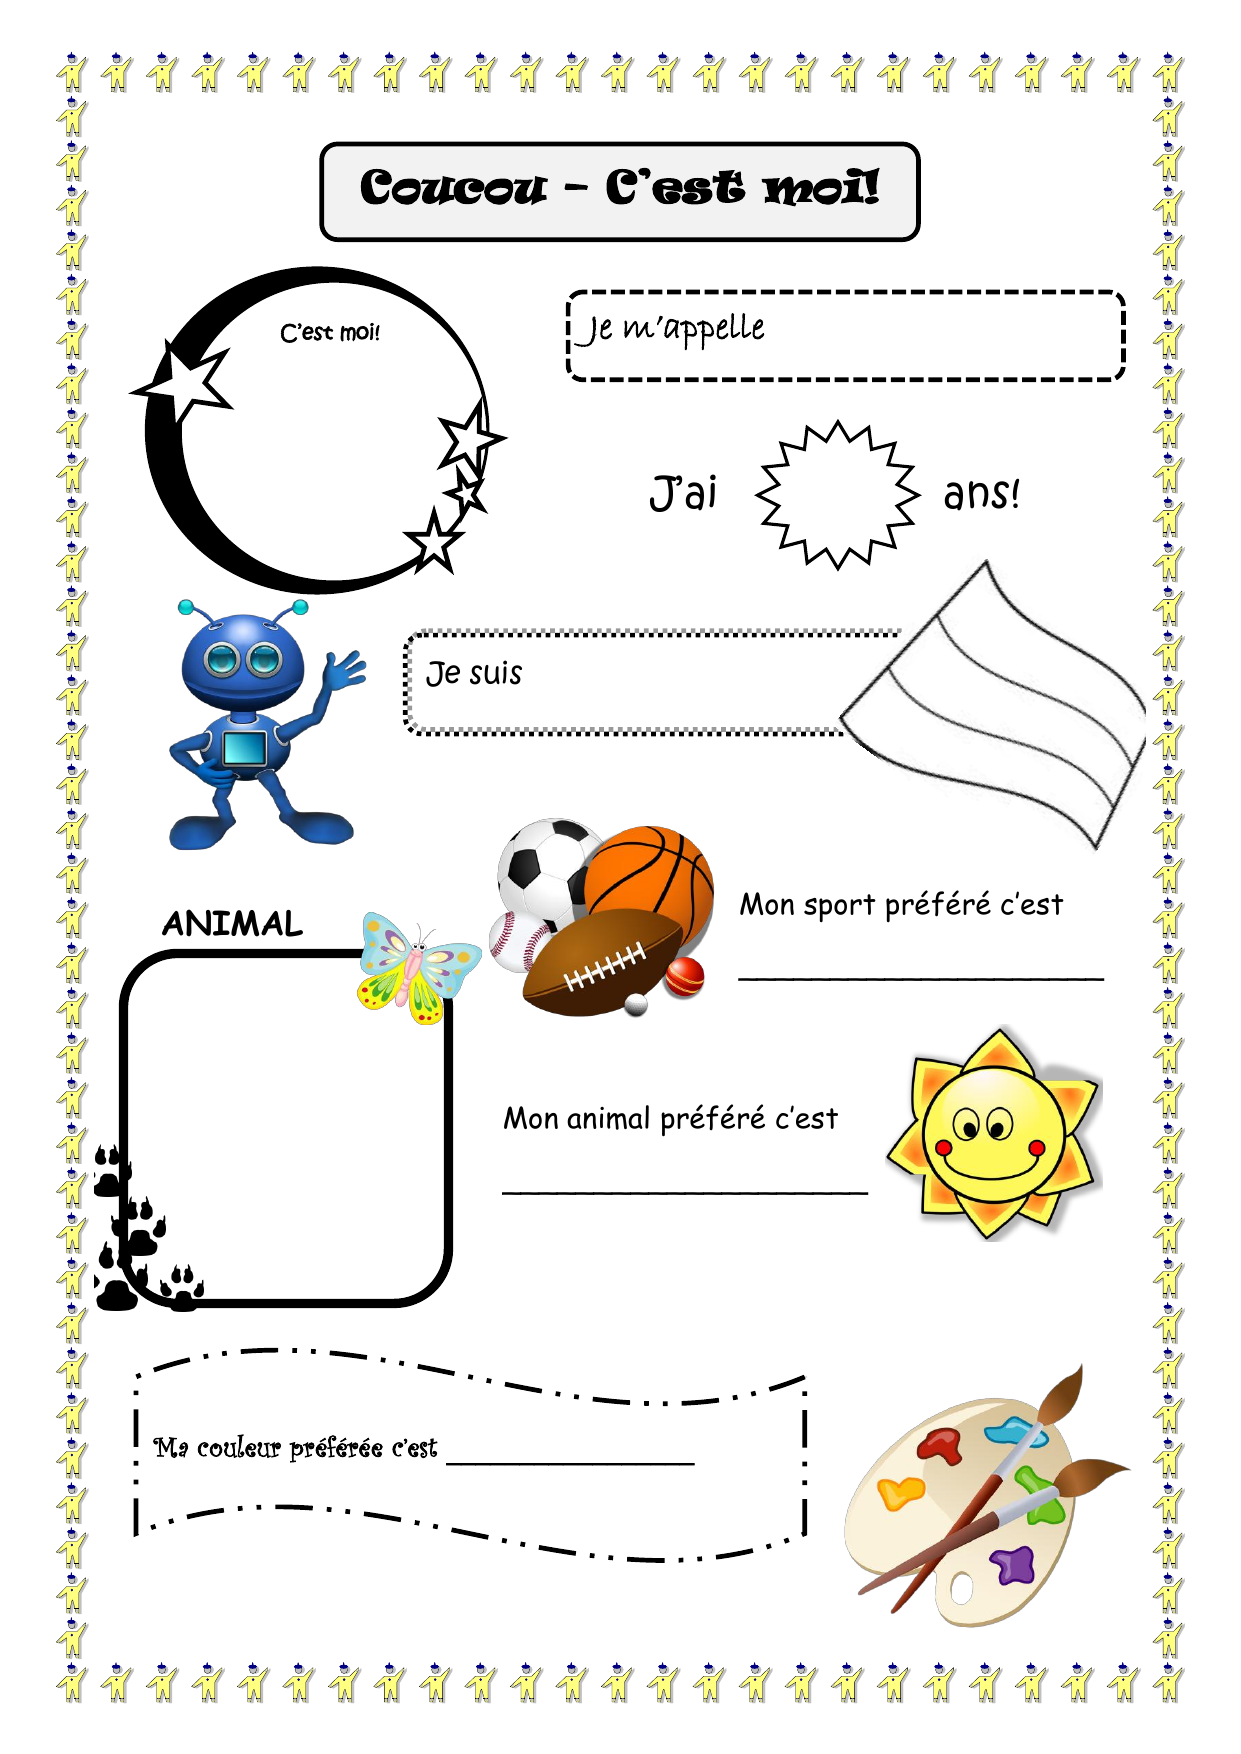 A Worksheet Where Pupils Can Fill In The Blanks To Give